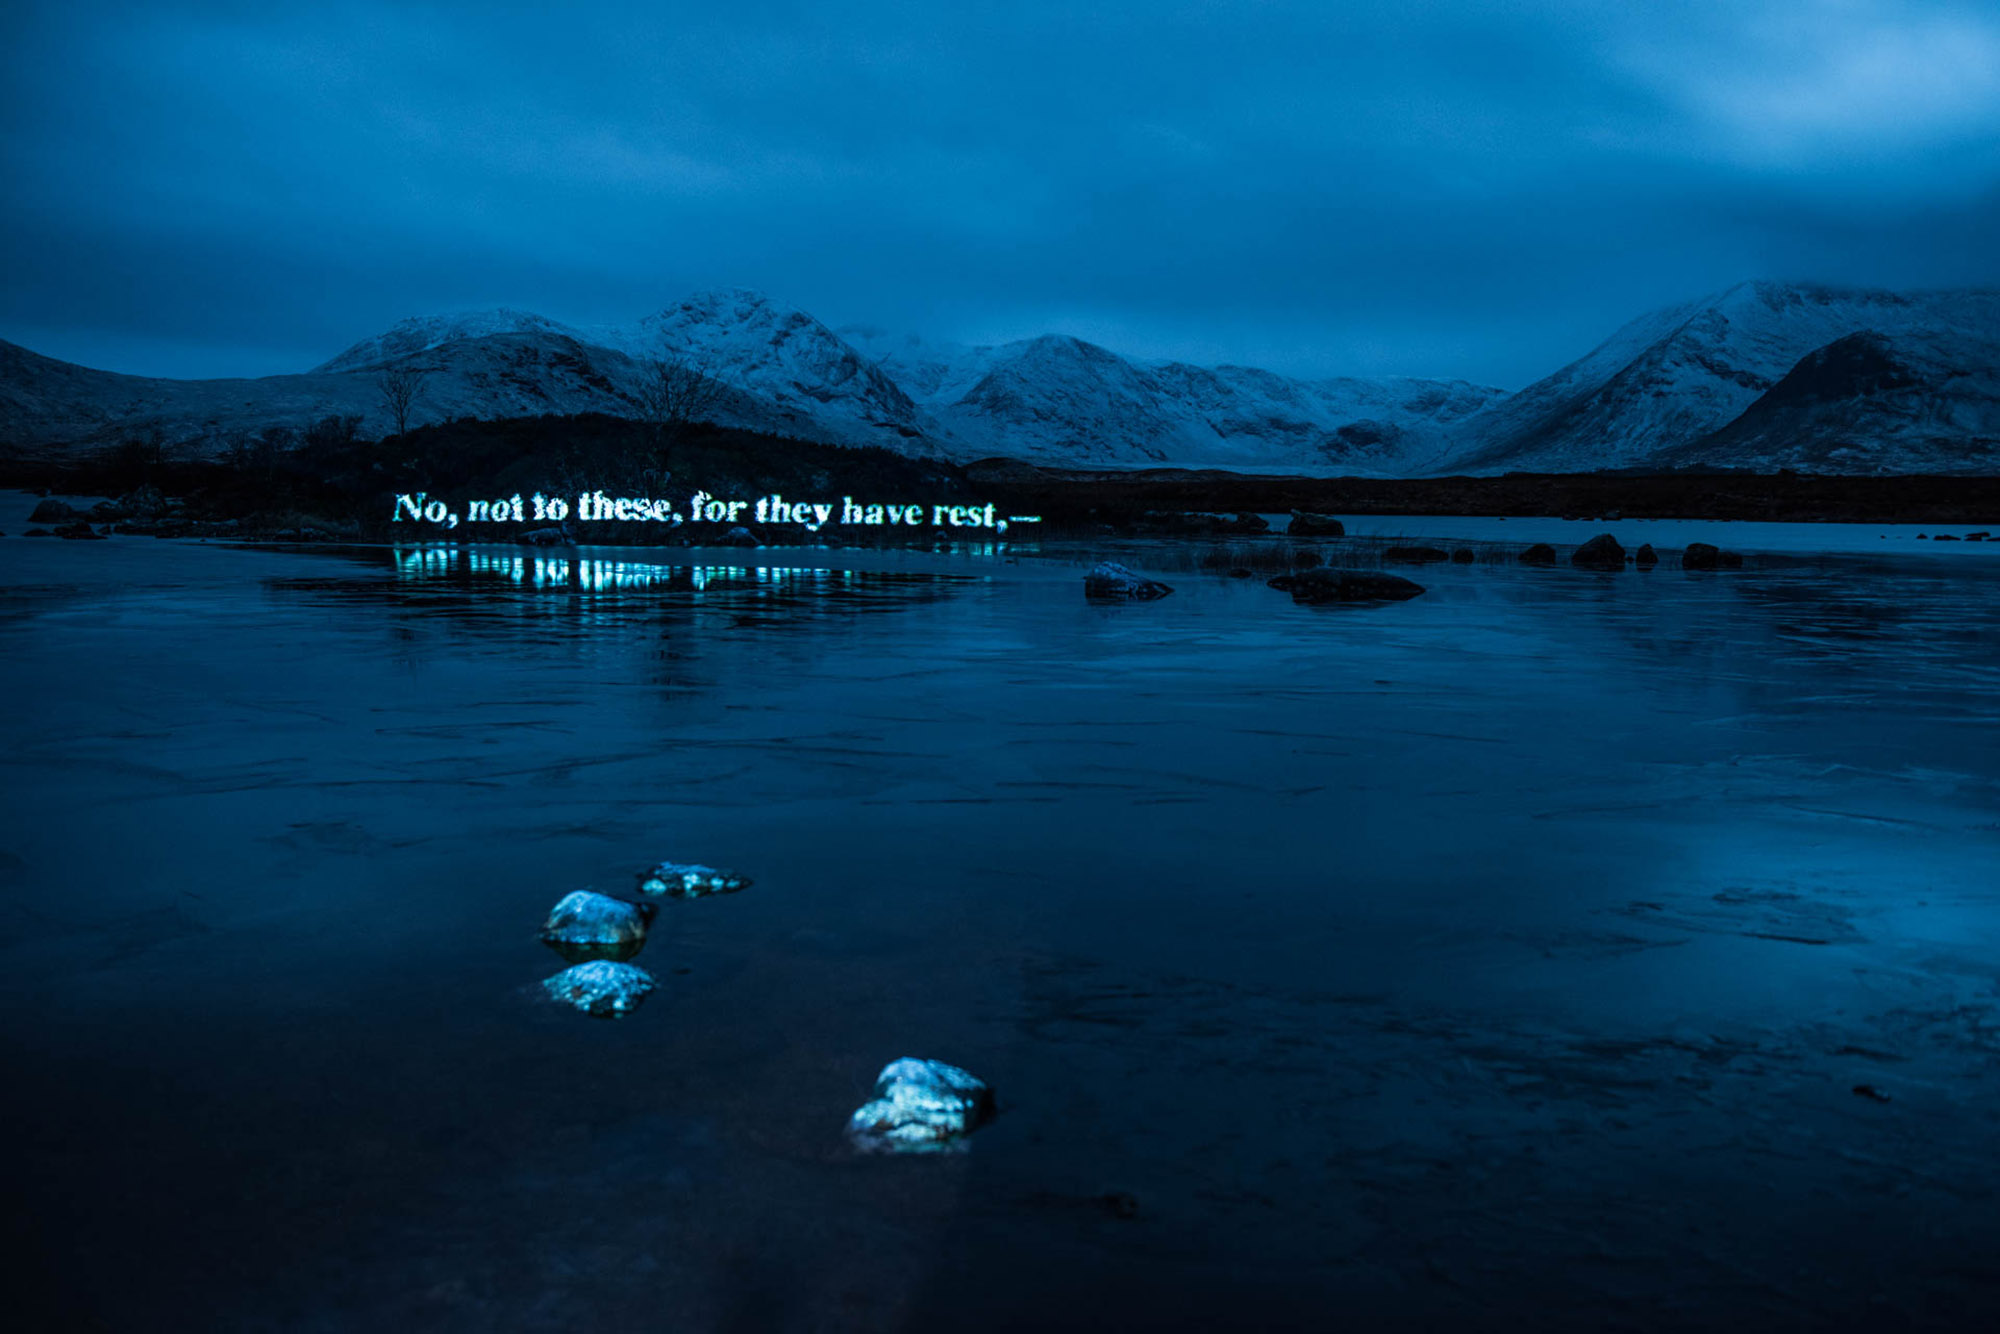 On The Massacre of Glencoe, Projection timelapse film, loch